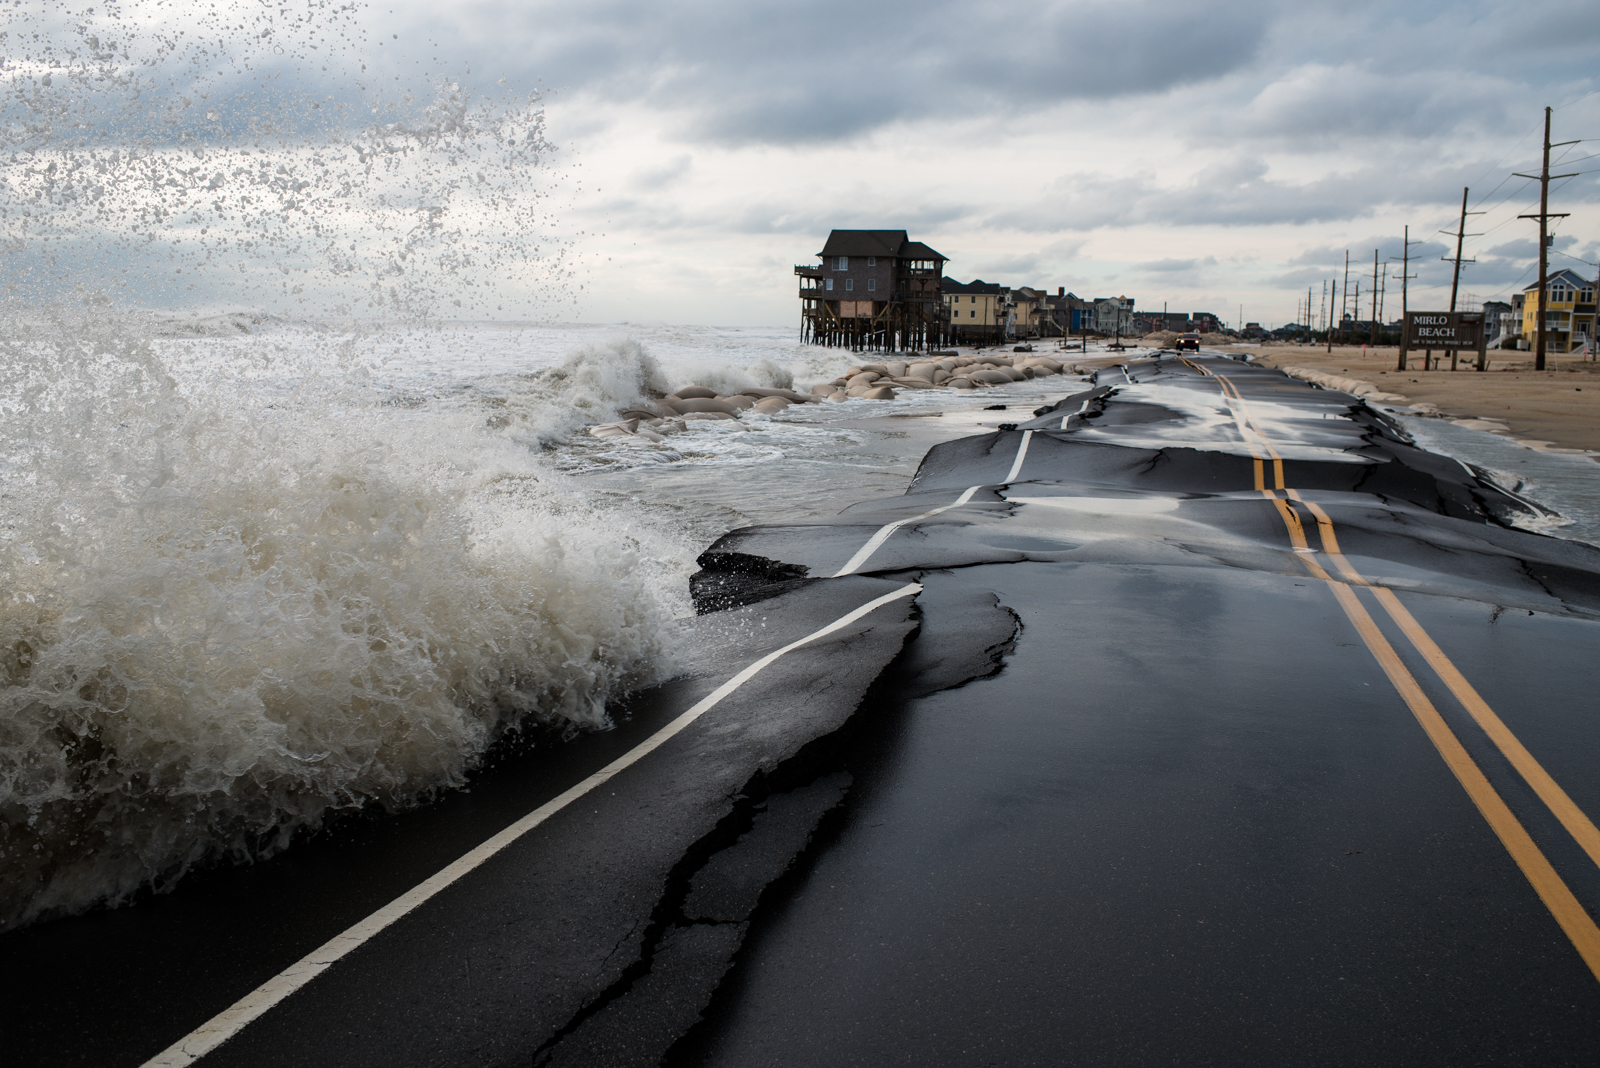 It doesn't necessarily take a hurricane to wash away the road on Hatteras Island. Mirlo Beach is pictured here, during a Nor'easter in December 2014.